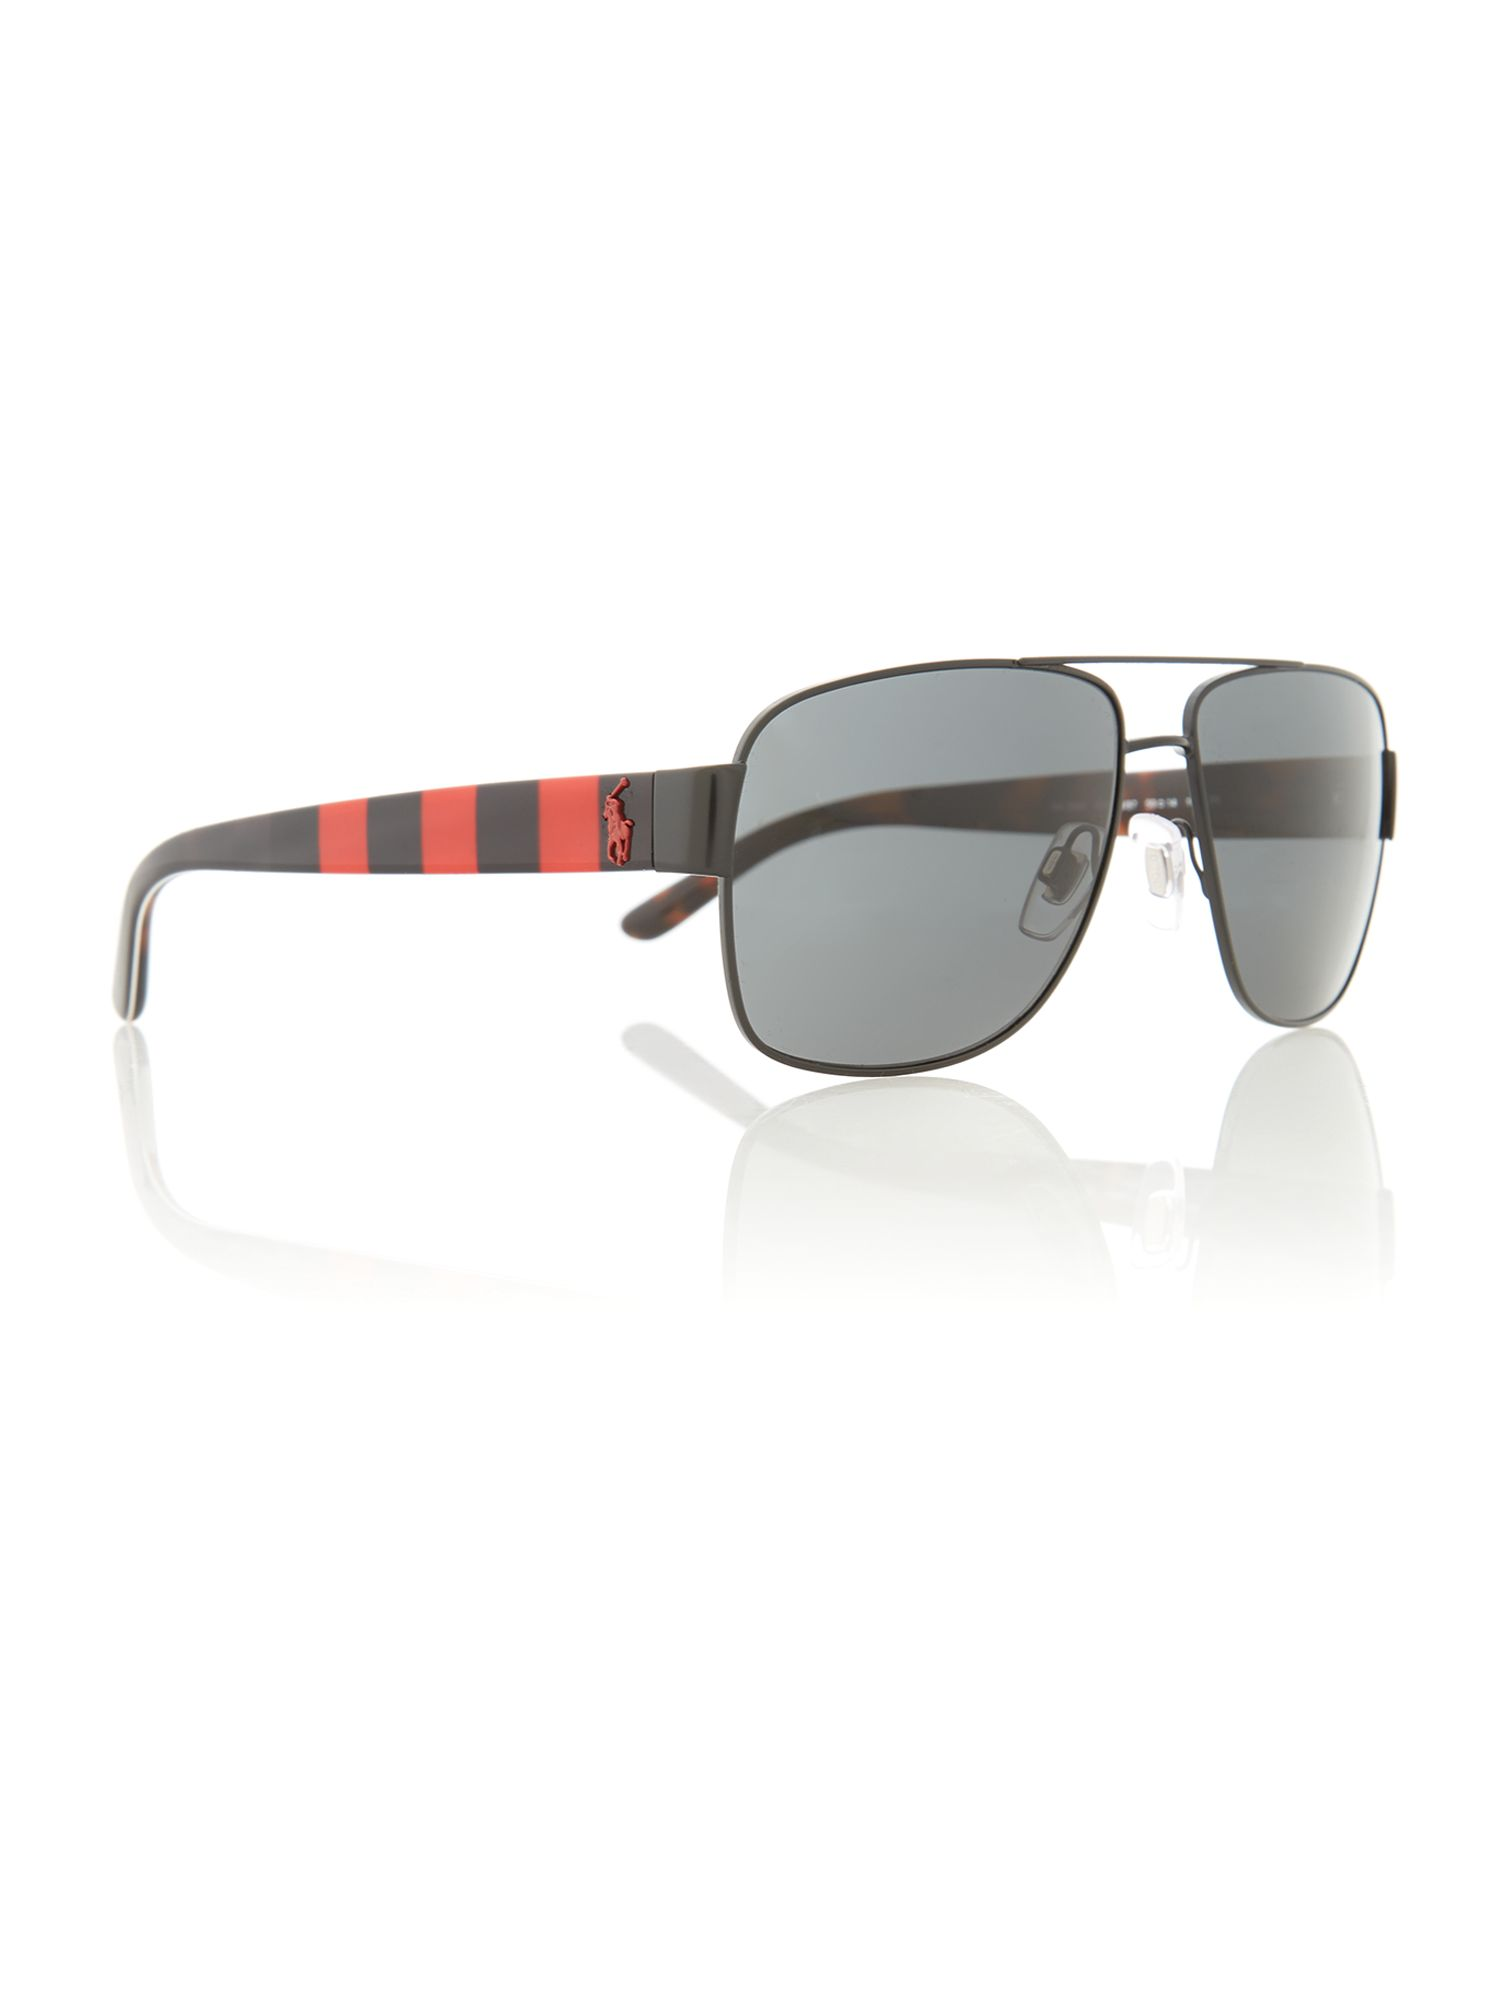 Men`s 0ph3085 sunglasses